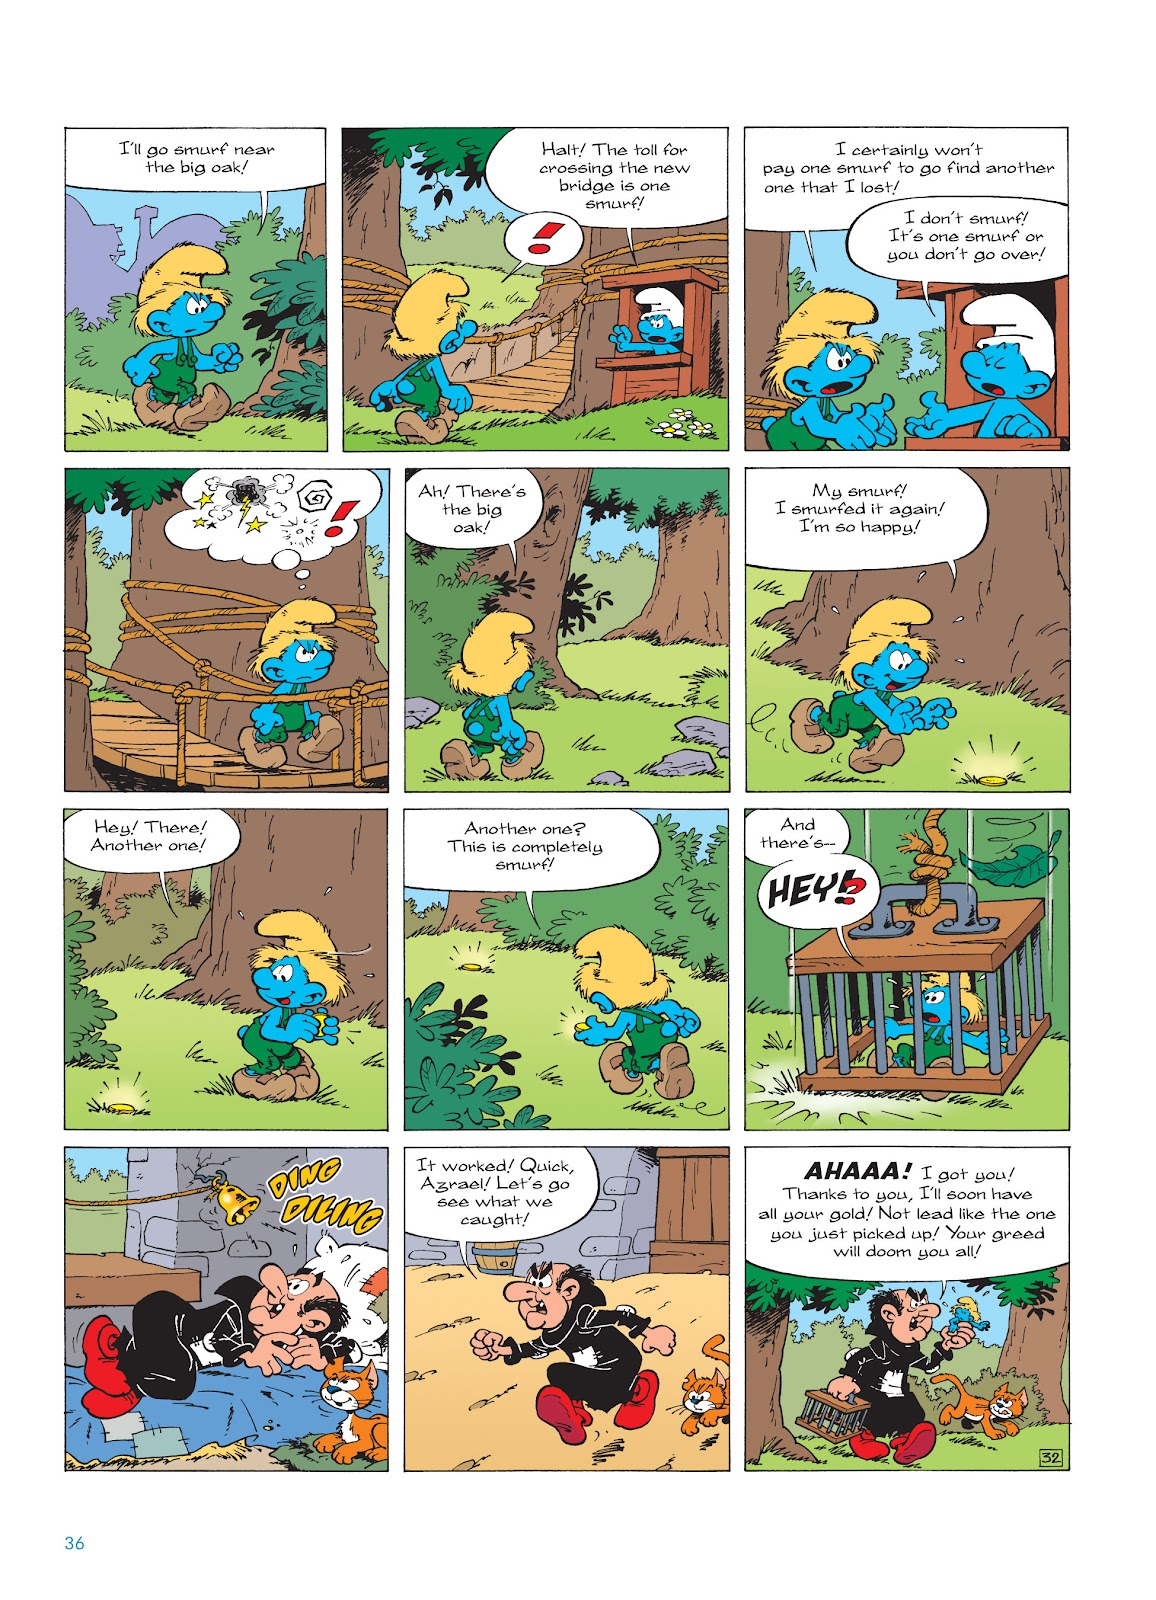 Read online The Smurfs comic -  Issue #18 - 36